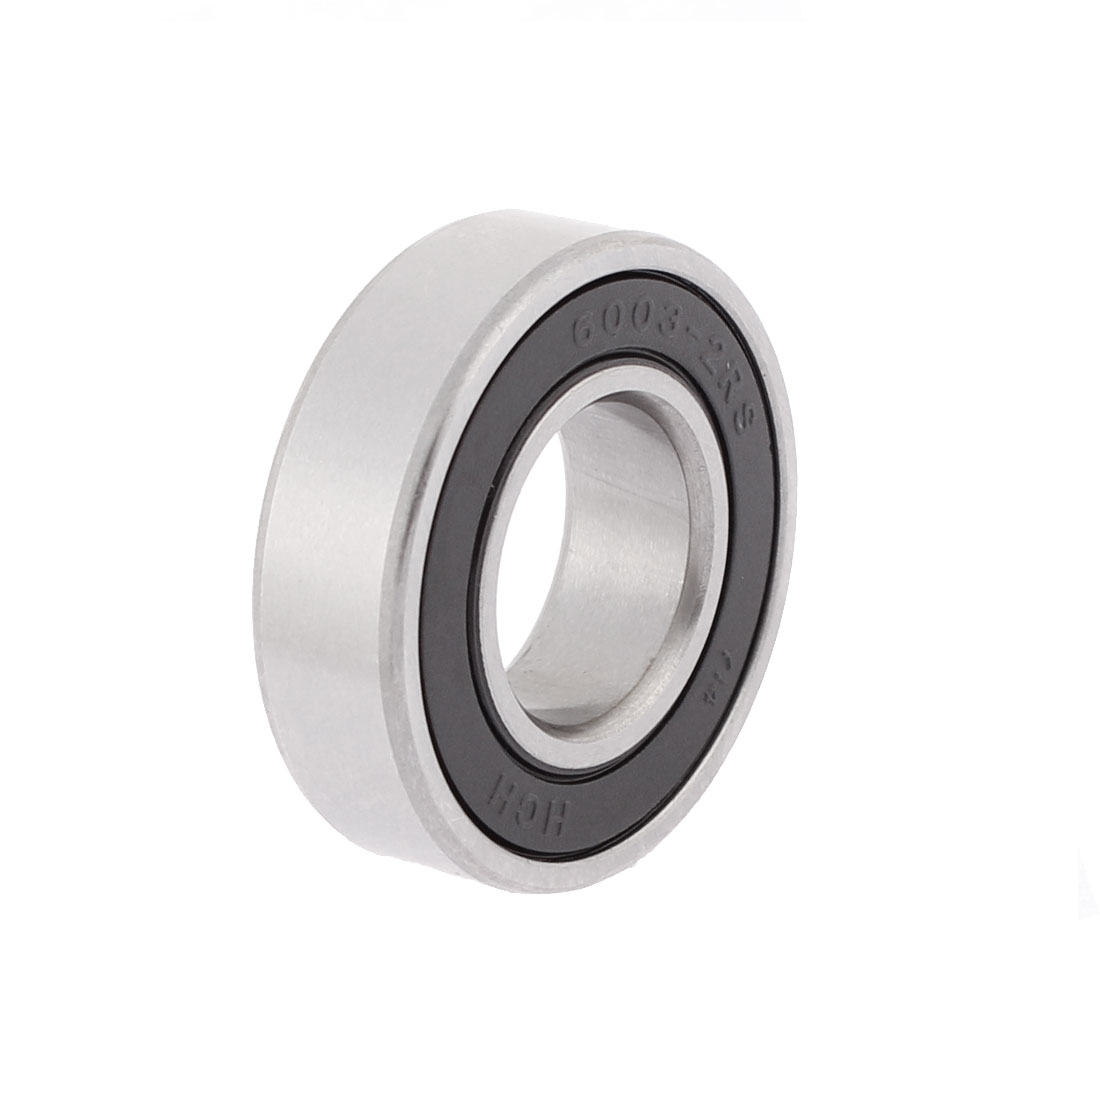 6003-2RS 34mm x 18mm x 10mm Double Shielded Metal Deep Groove Guide Pulley Rail Ball Wheel Bearings Silver Tone Black